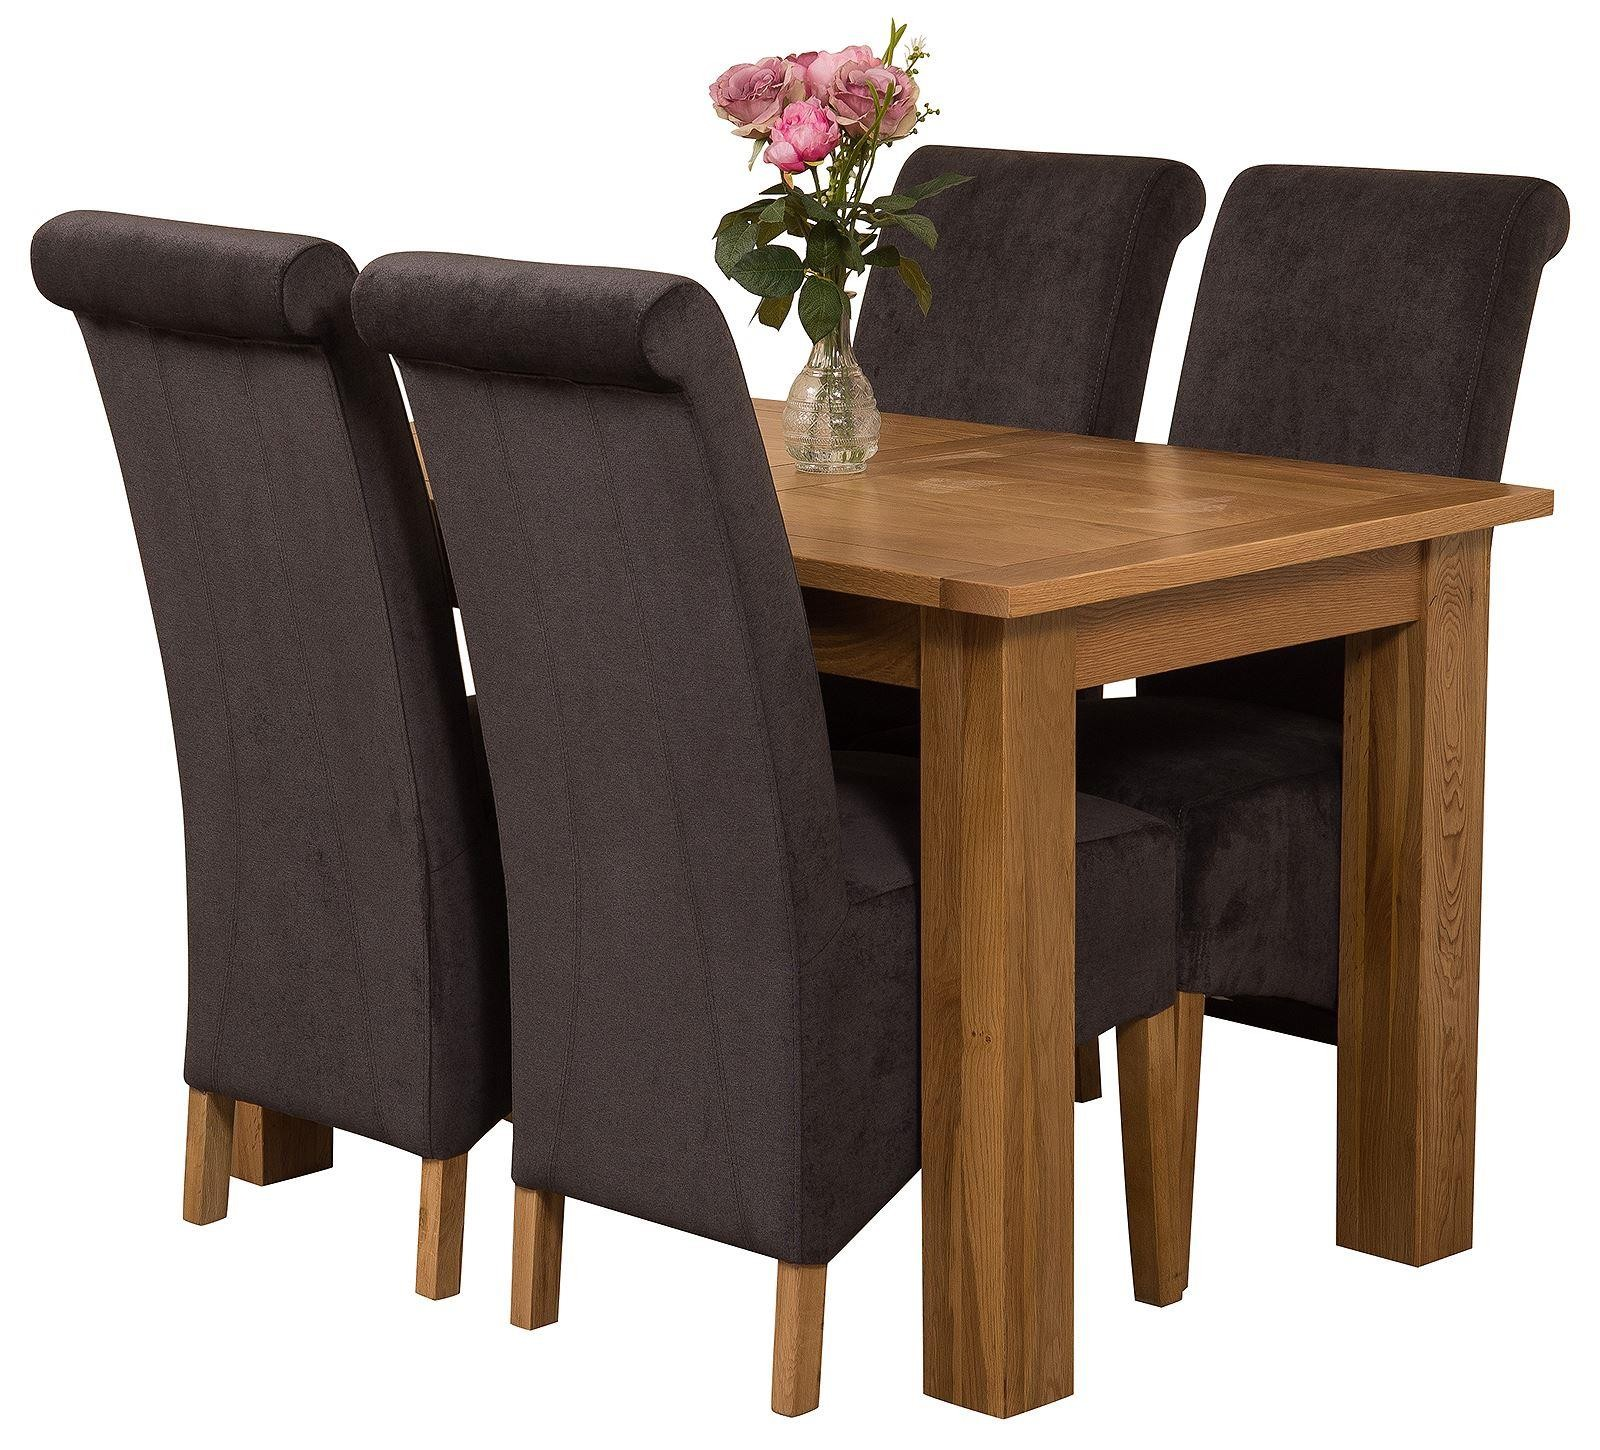 Hampton Solid Oak 120-160cm Extending Dining Table with 4 Montana Dining Chairs [Black Fabric]